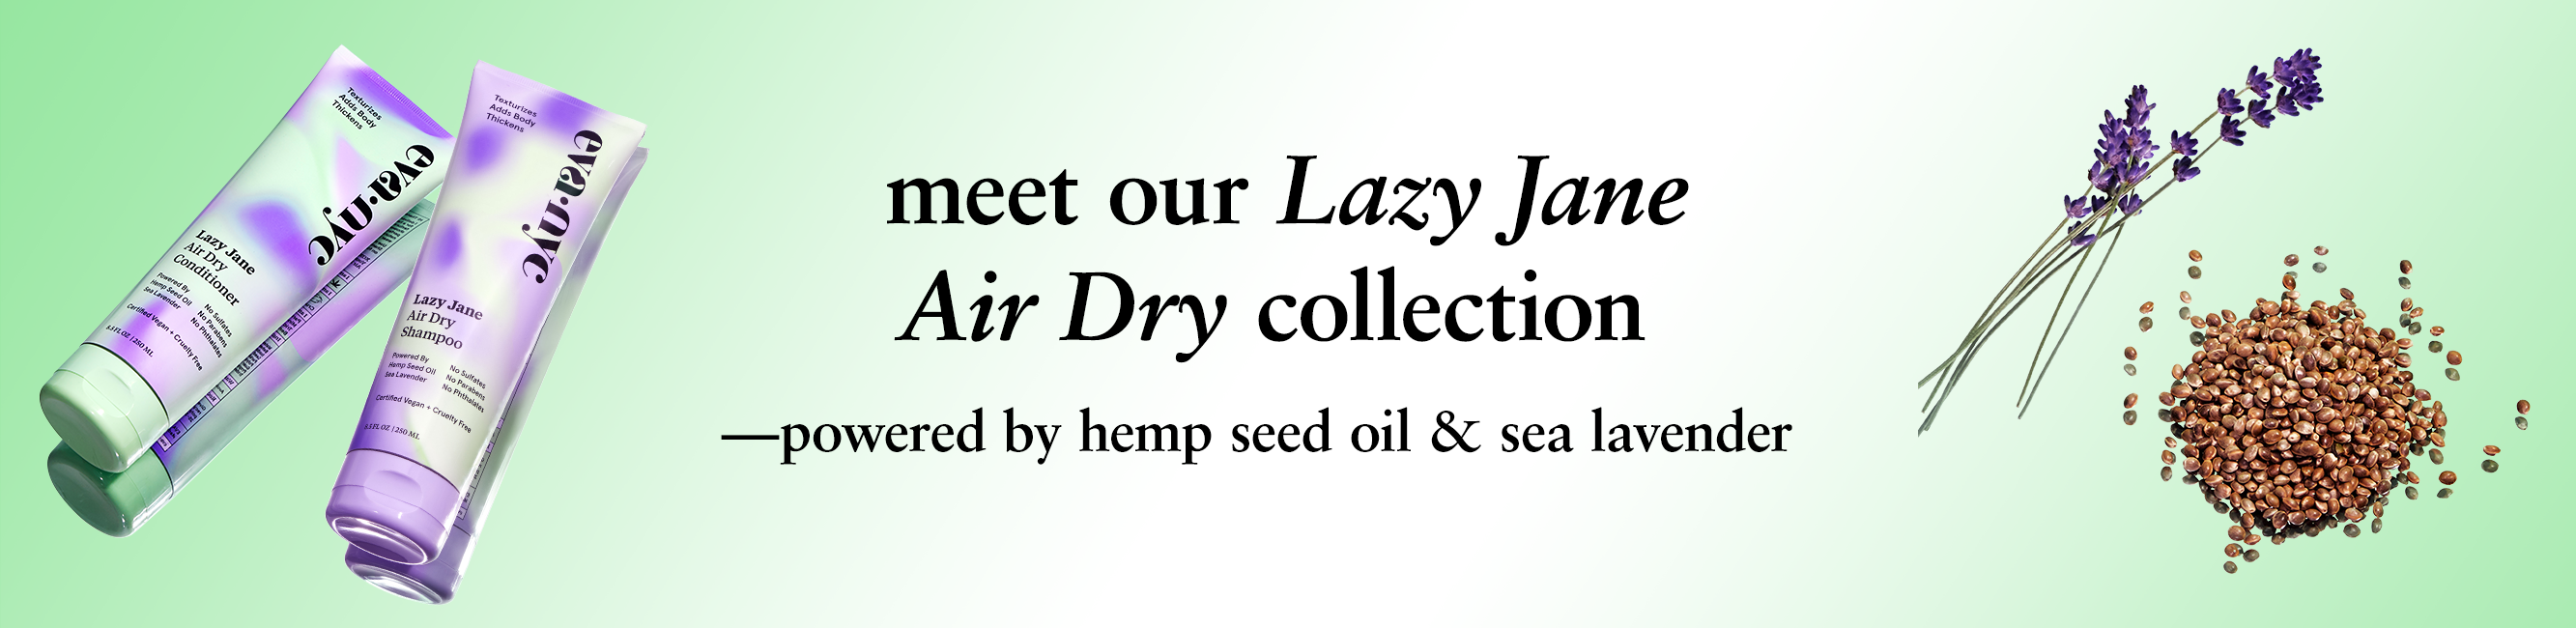 meet our lazy jane air dry collection